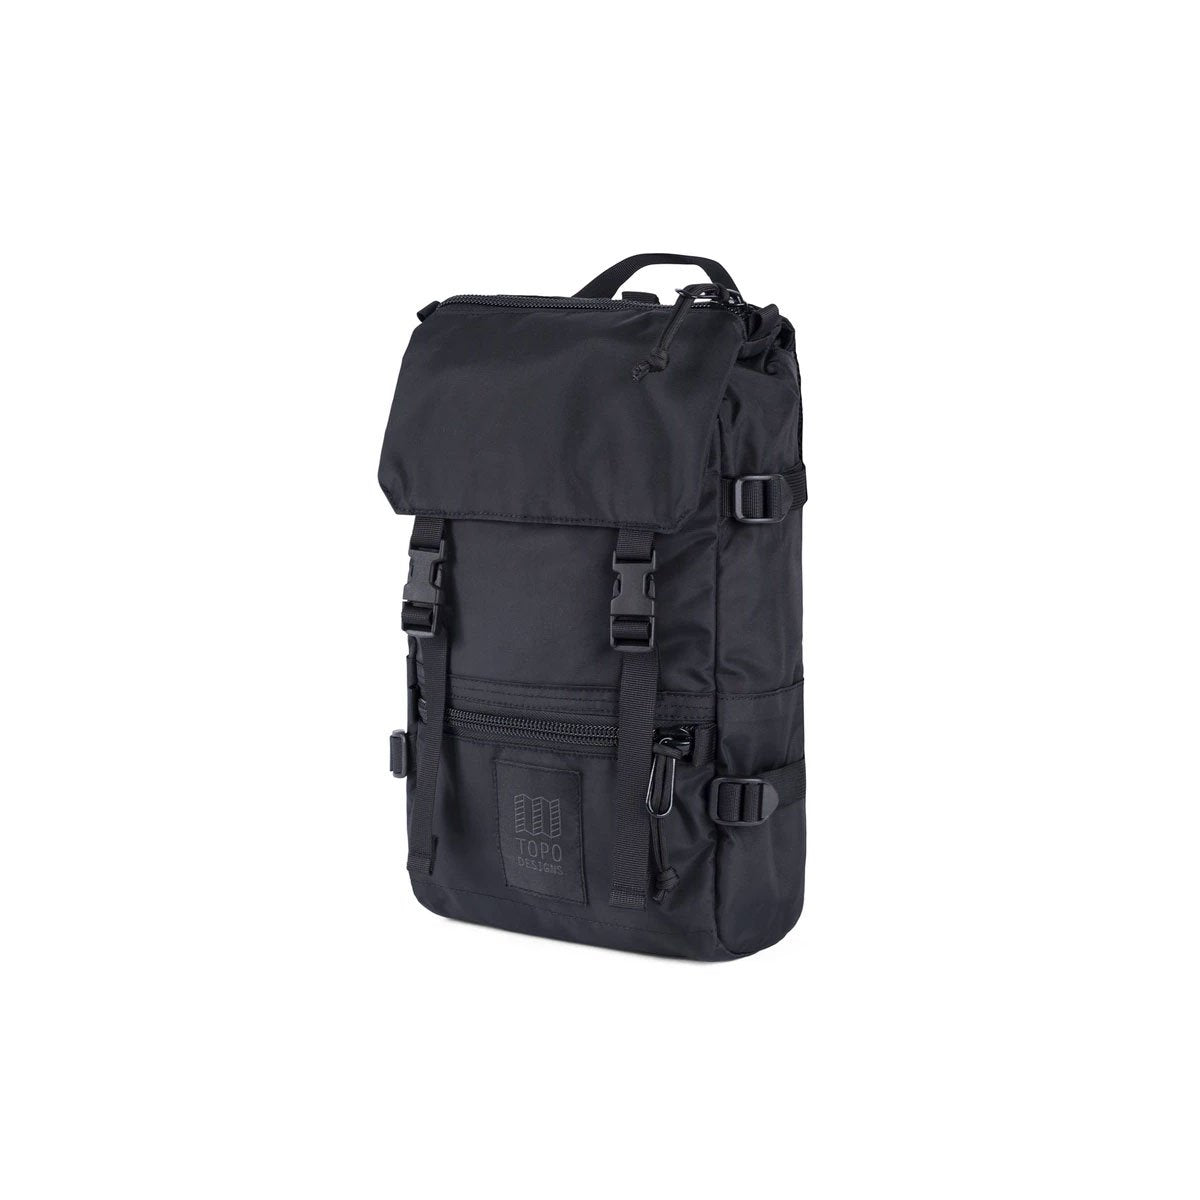 Topo Designs : Rover Pack Mini : Black/Black